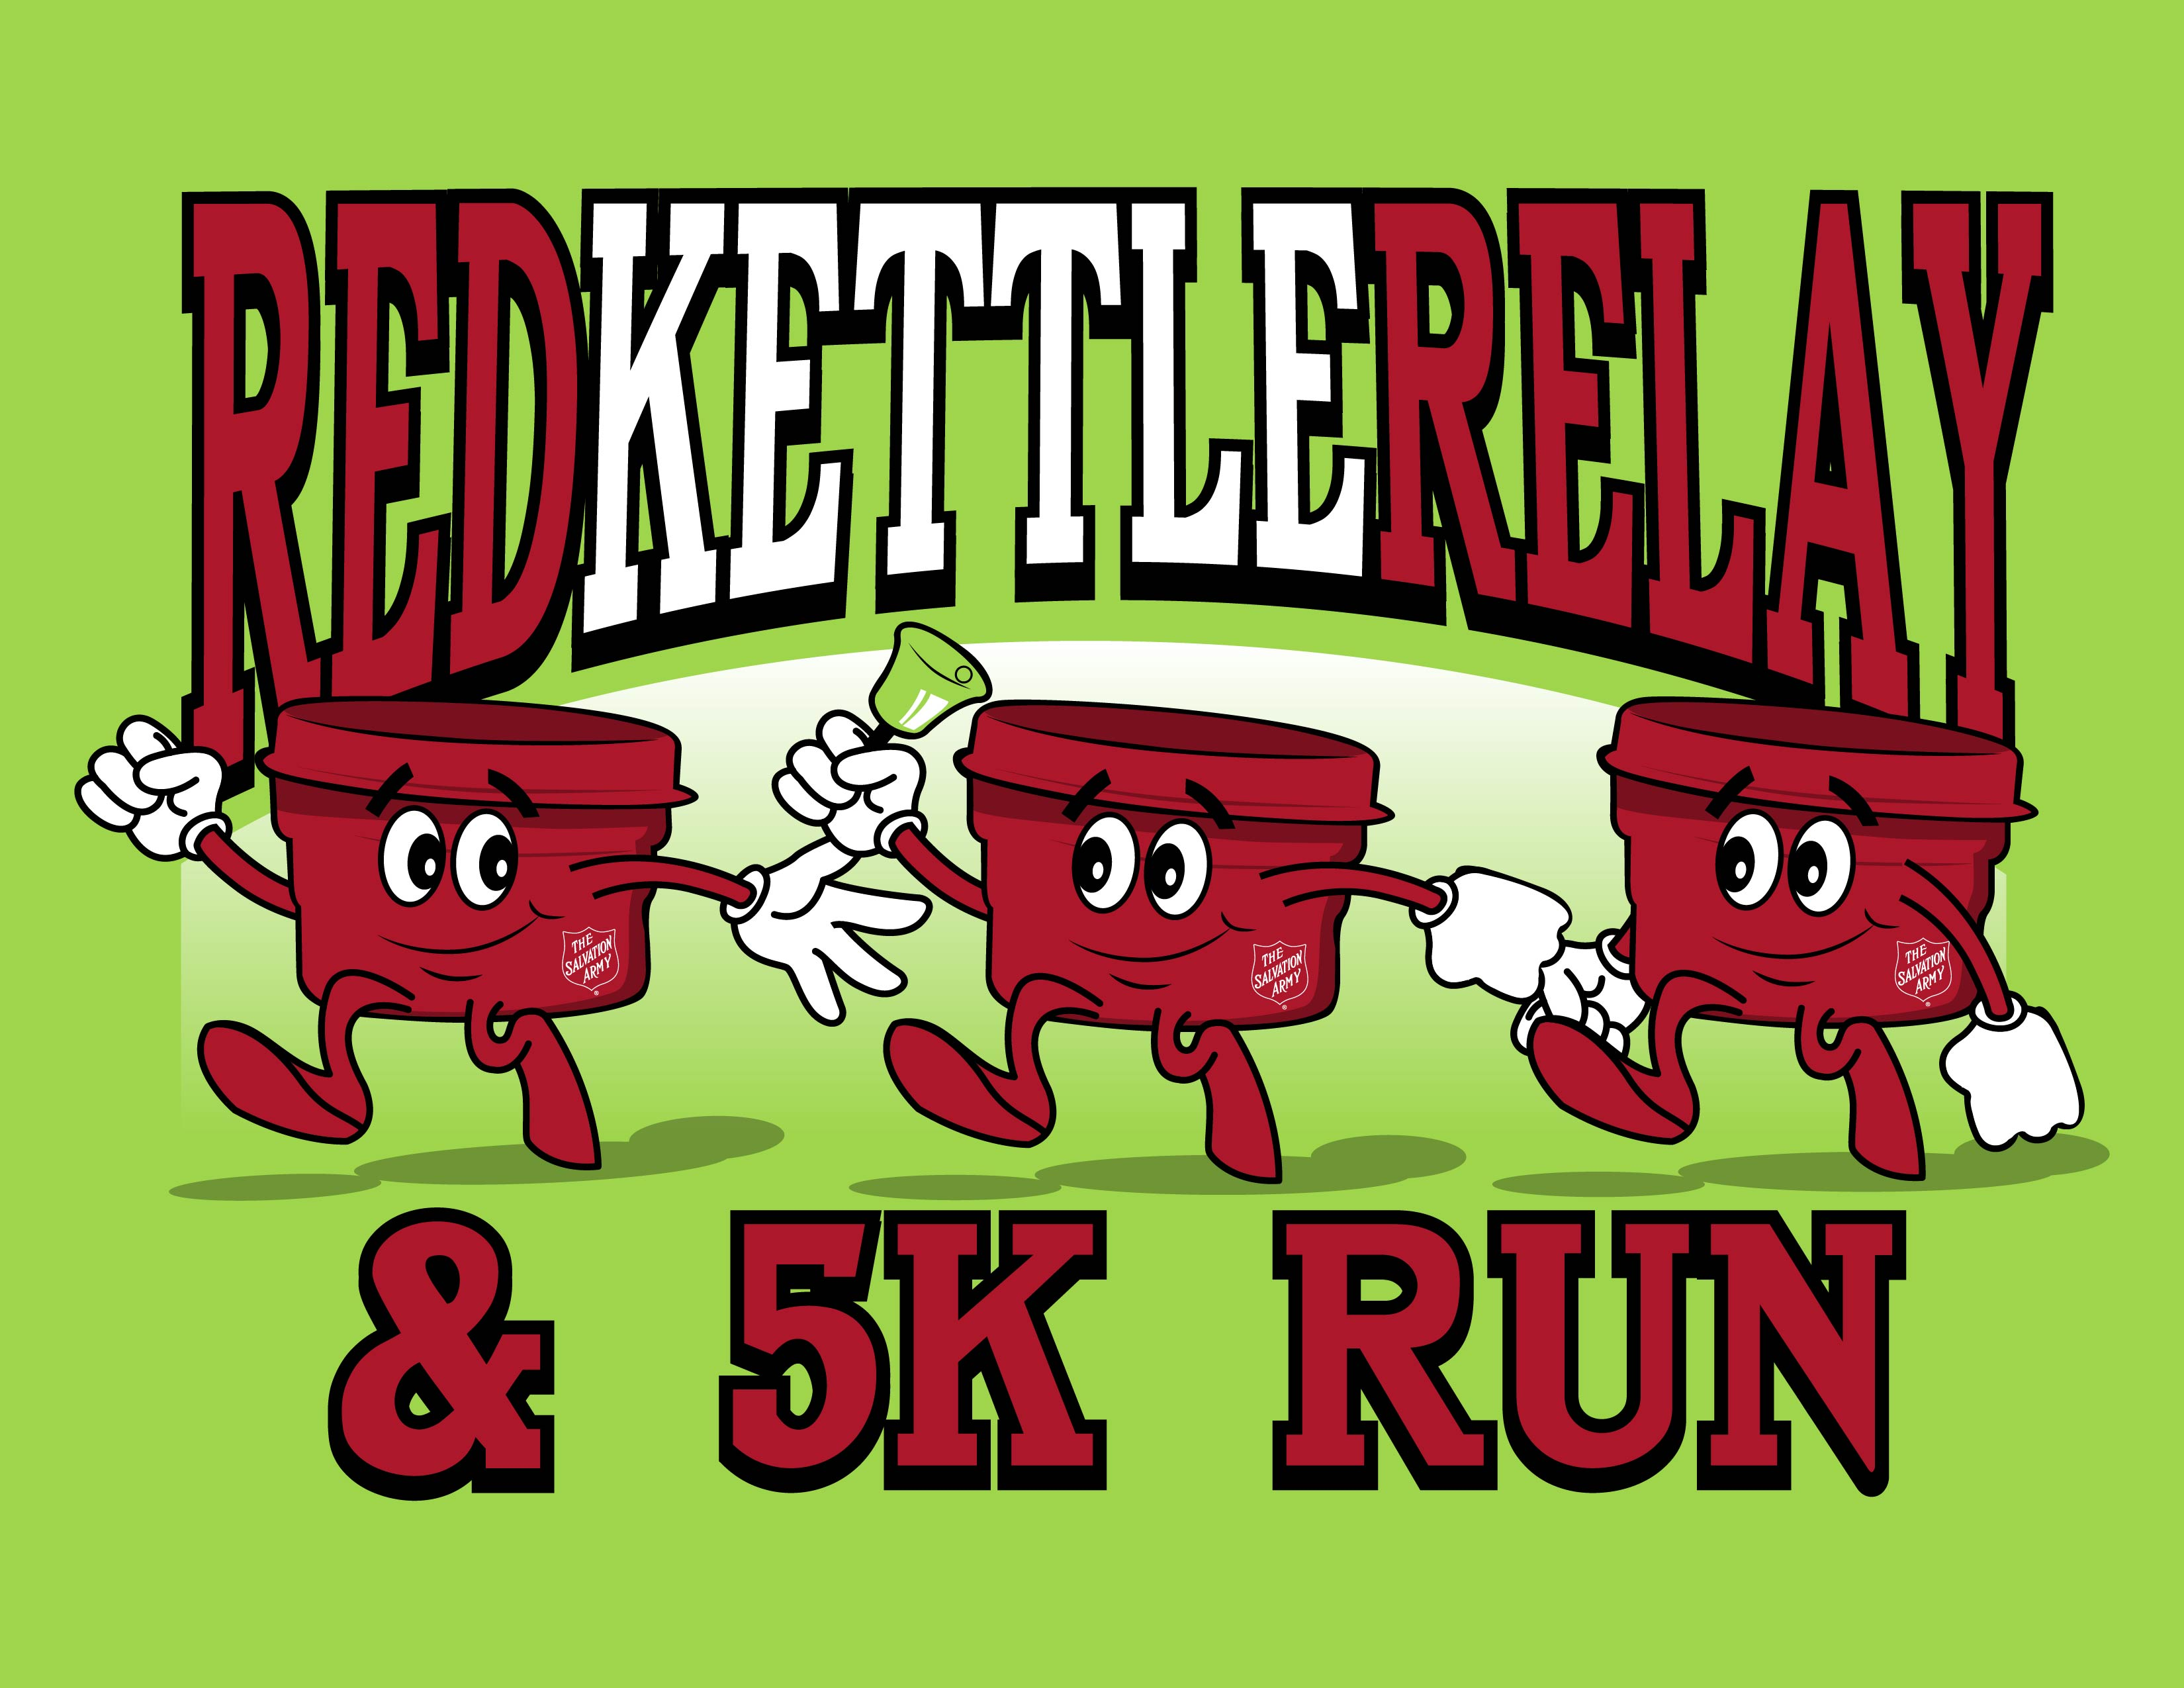 Register for the 2017 Red Kettle Relay & 5k